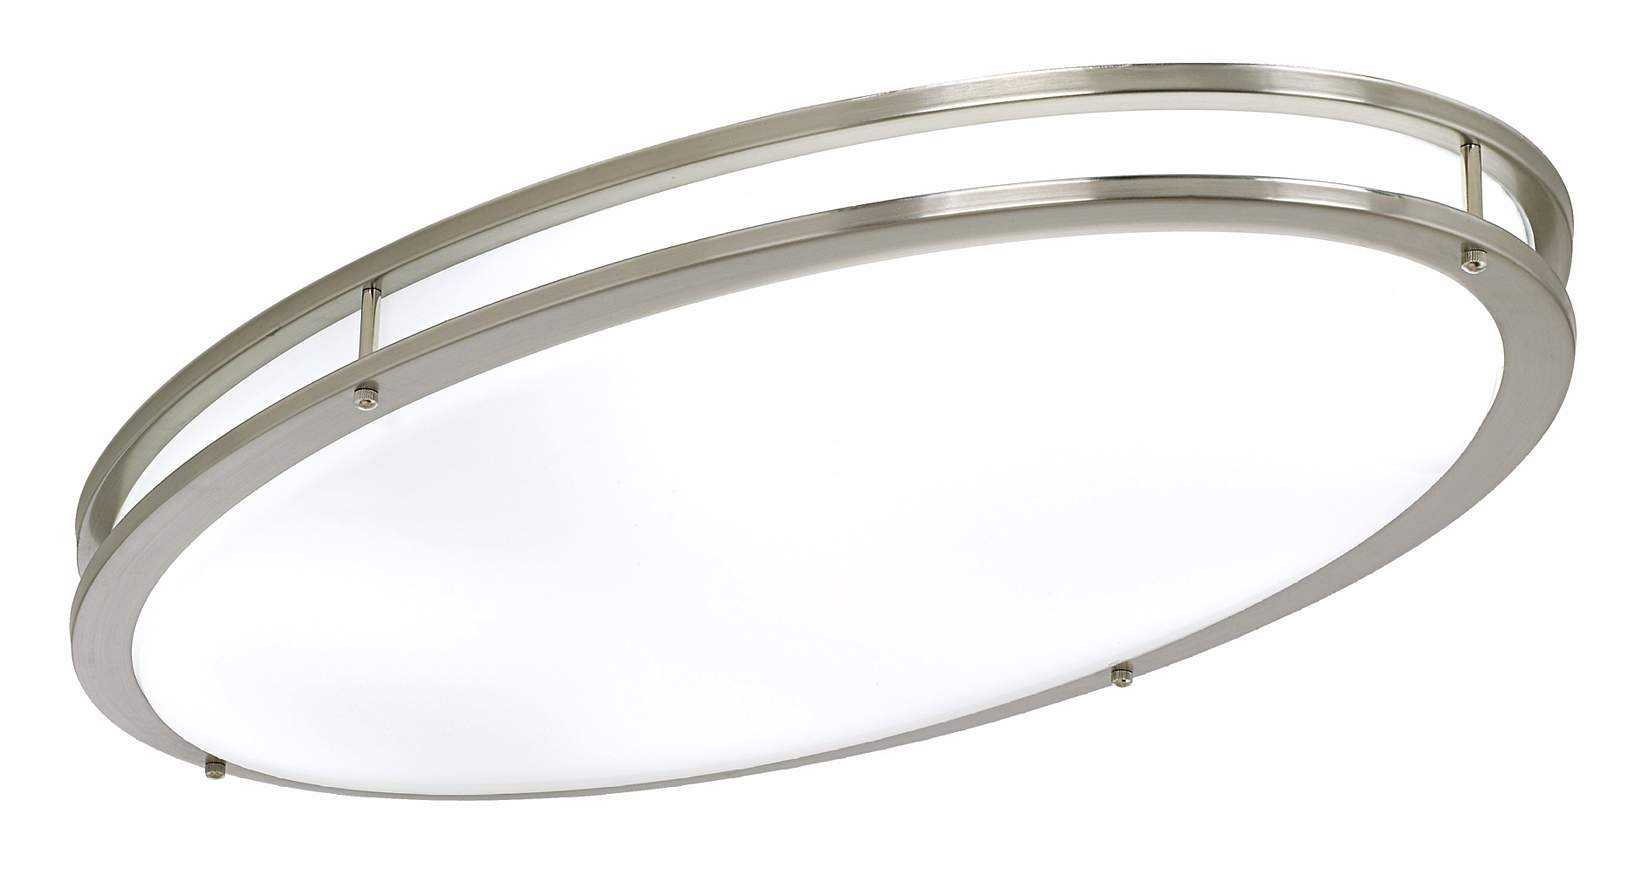 LB72132 LED Flush Mount Ceiling Lighting Oval, Antique Brushed Nickel, 32-Inch 3000K Warm White, 2800 Lumens, Energy Star